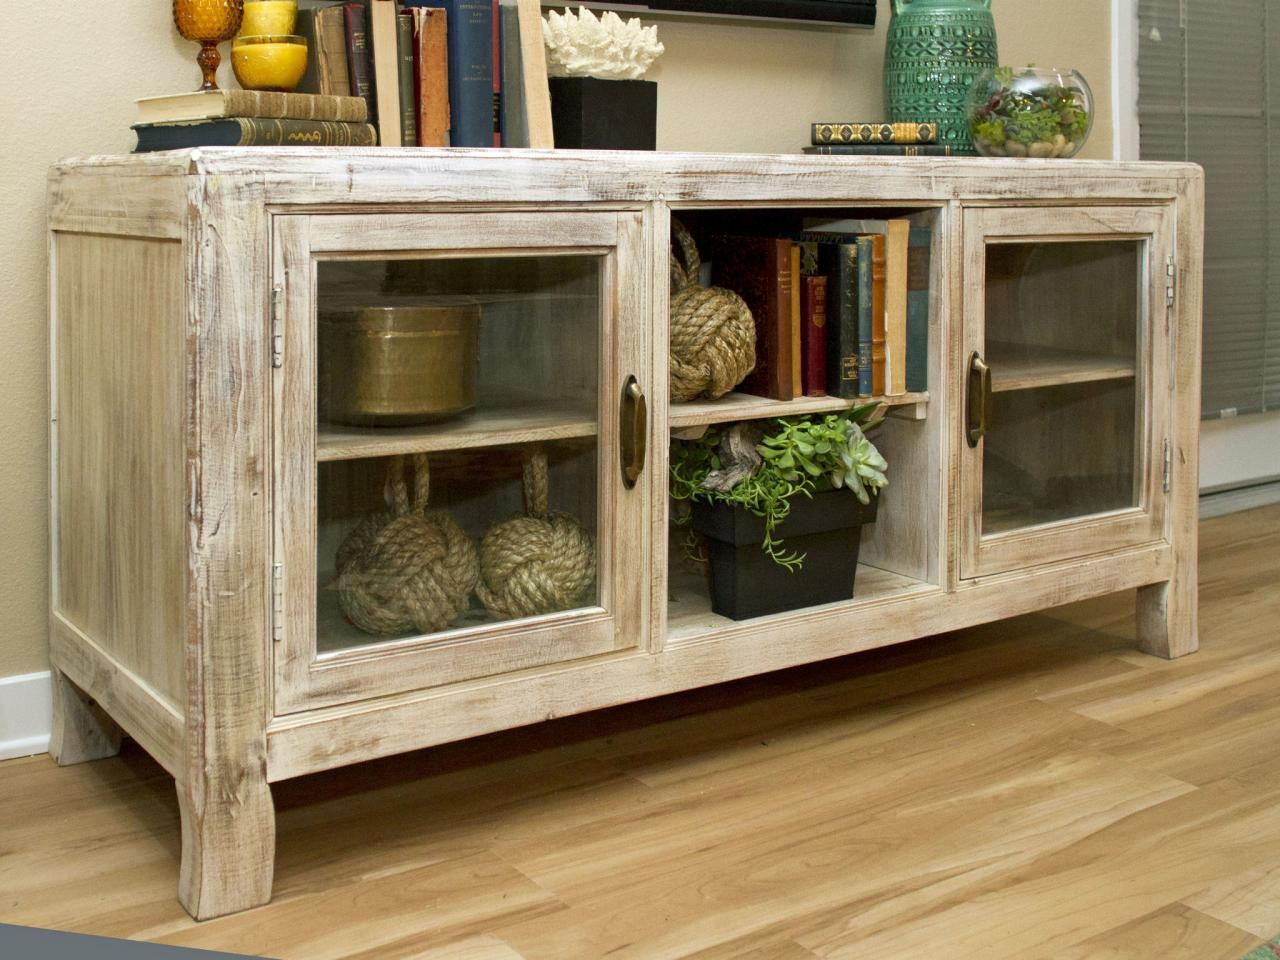 Check out a neutral wood cottage style credenza with glass doors ...